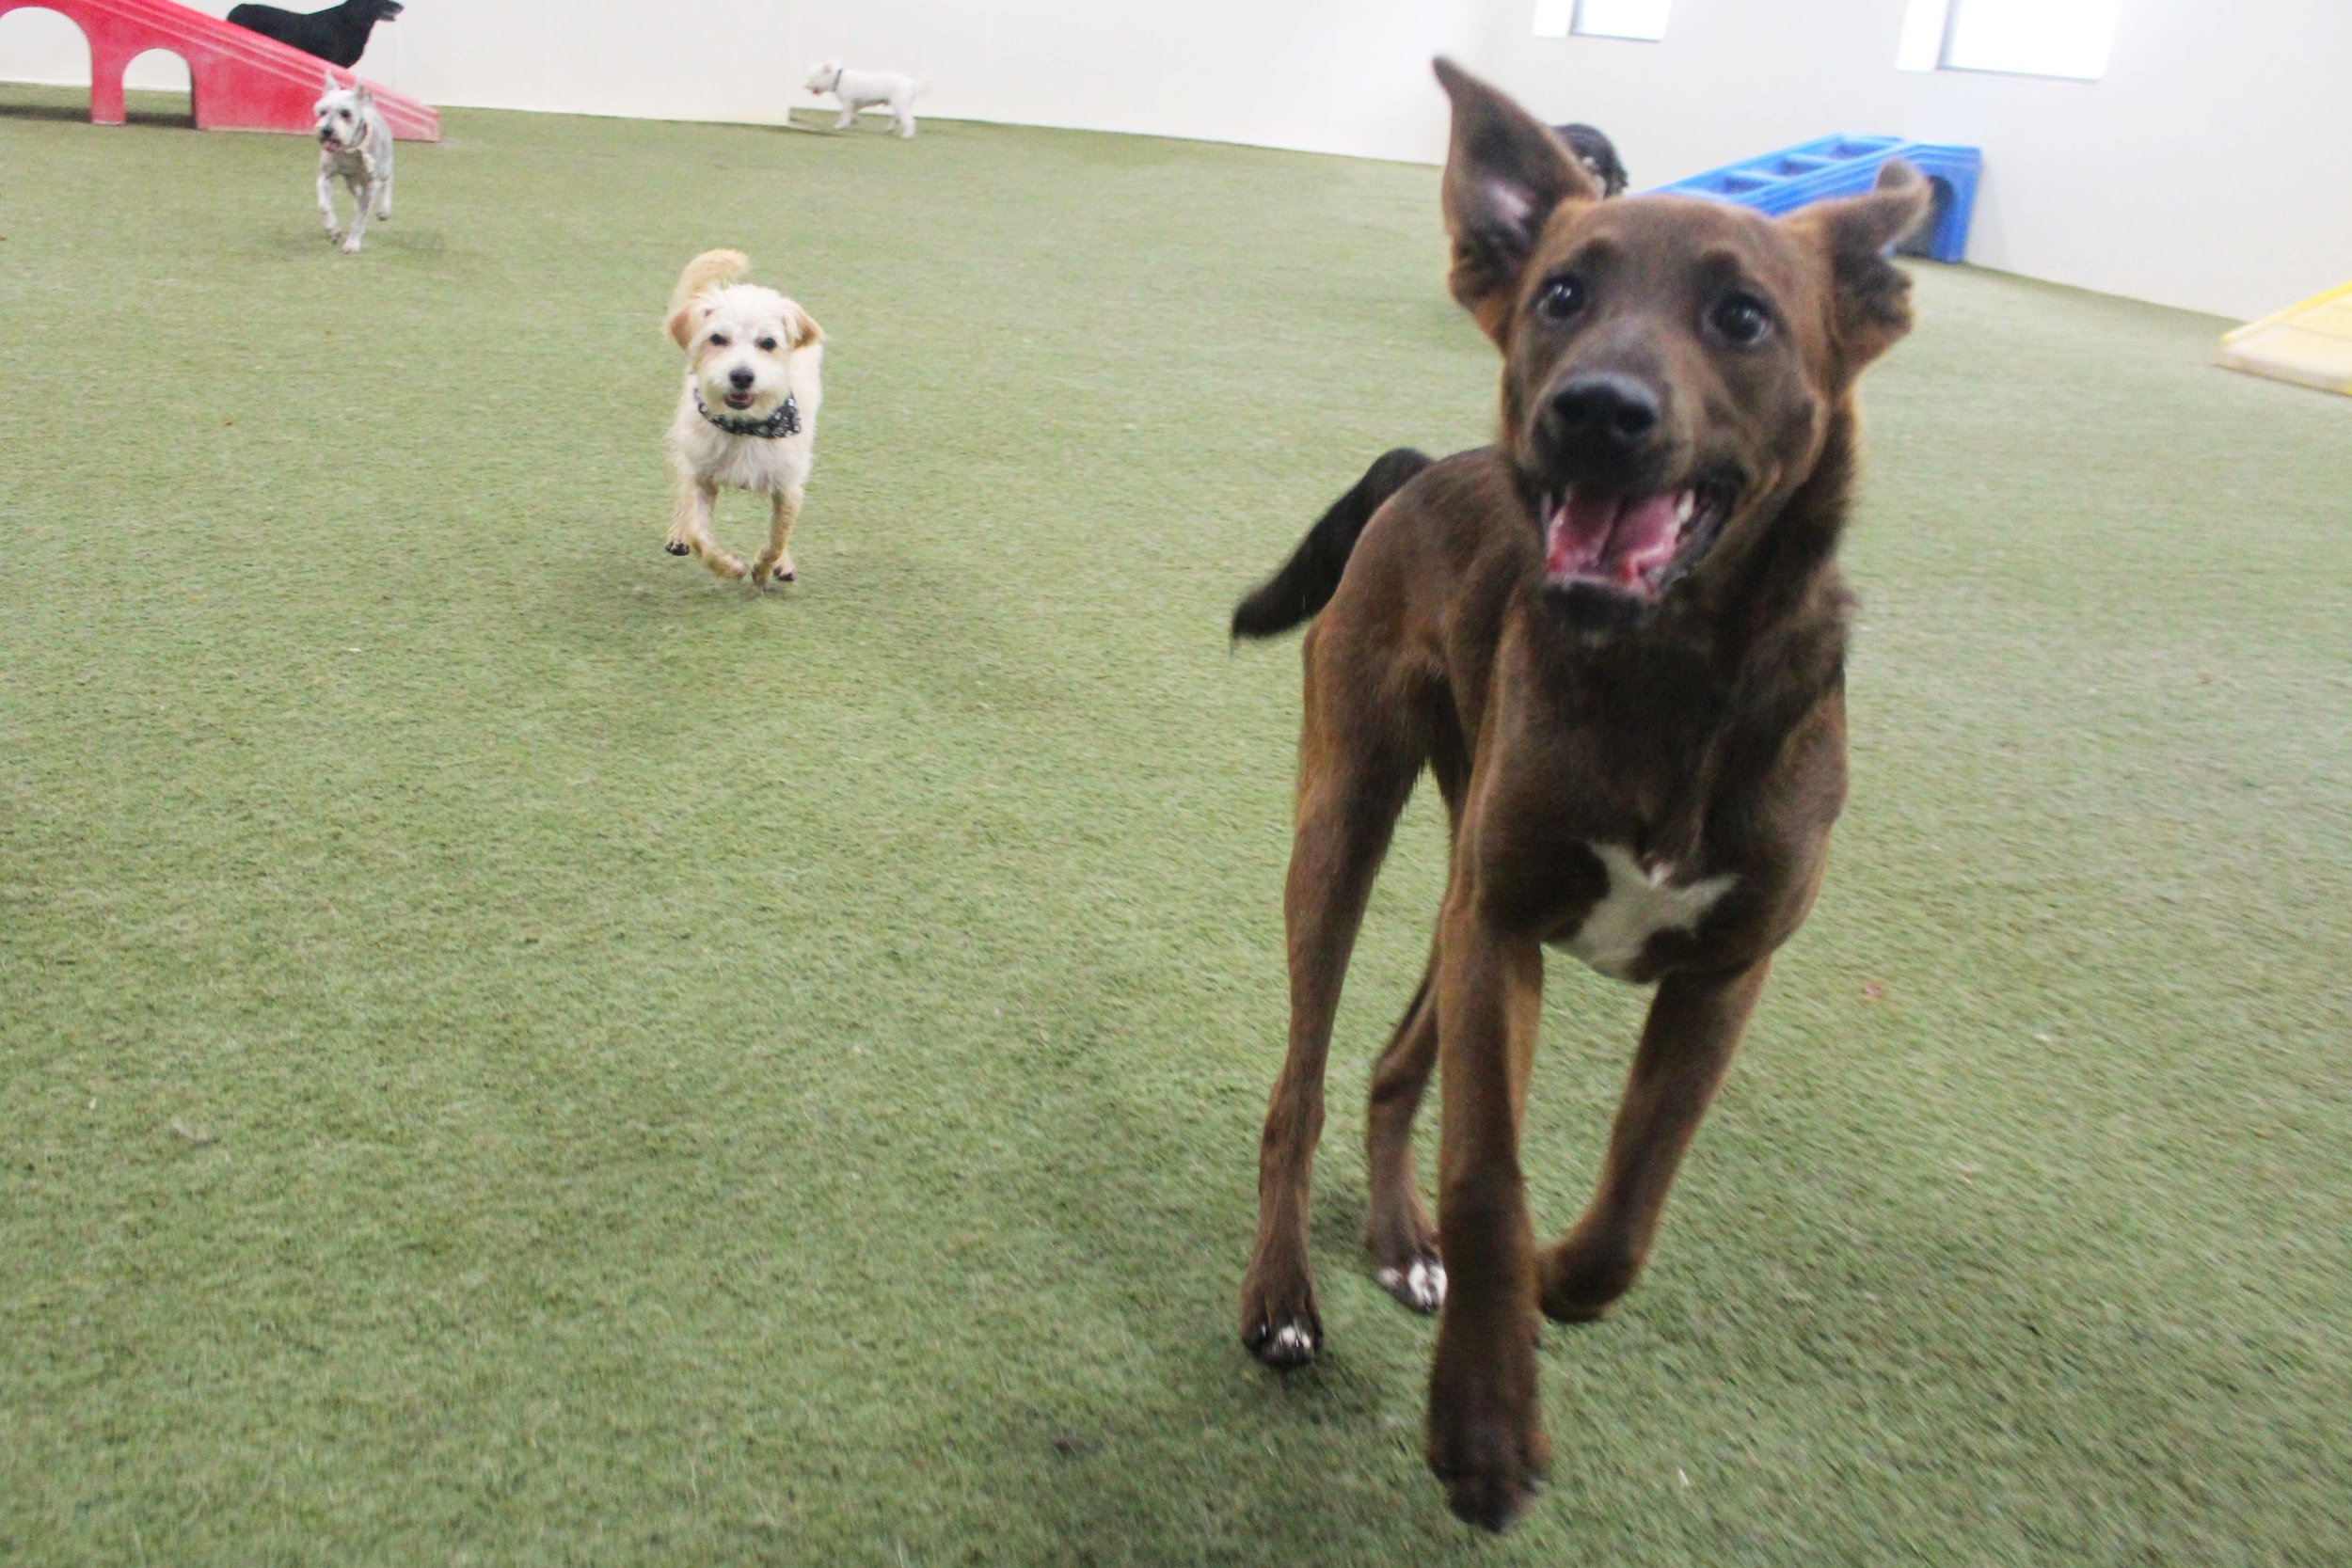 Meeka is the kind of dog that gets along with every dog, large or small.  She plays great in daycare and is a pleasure to have when she's boarding.  Meeka is a fun-loving doggo.